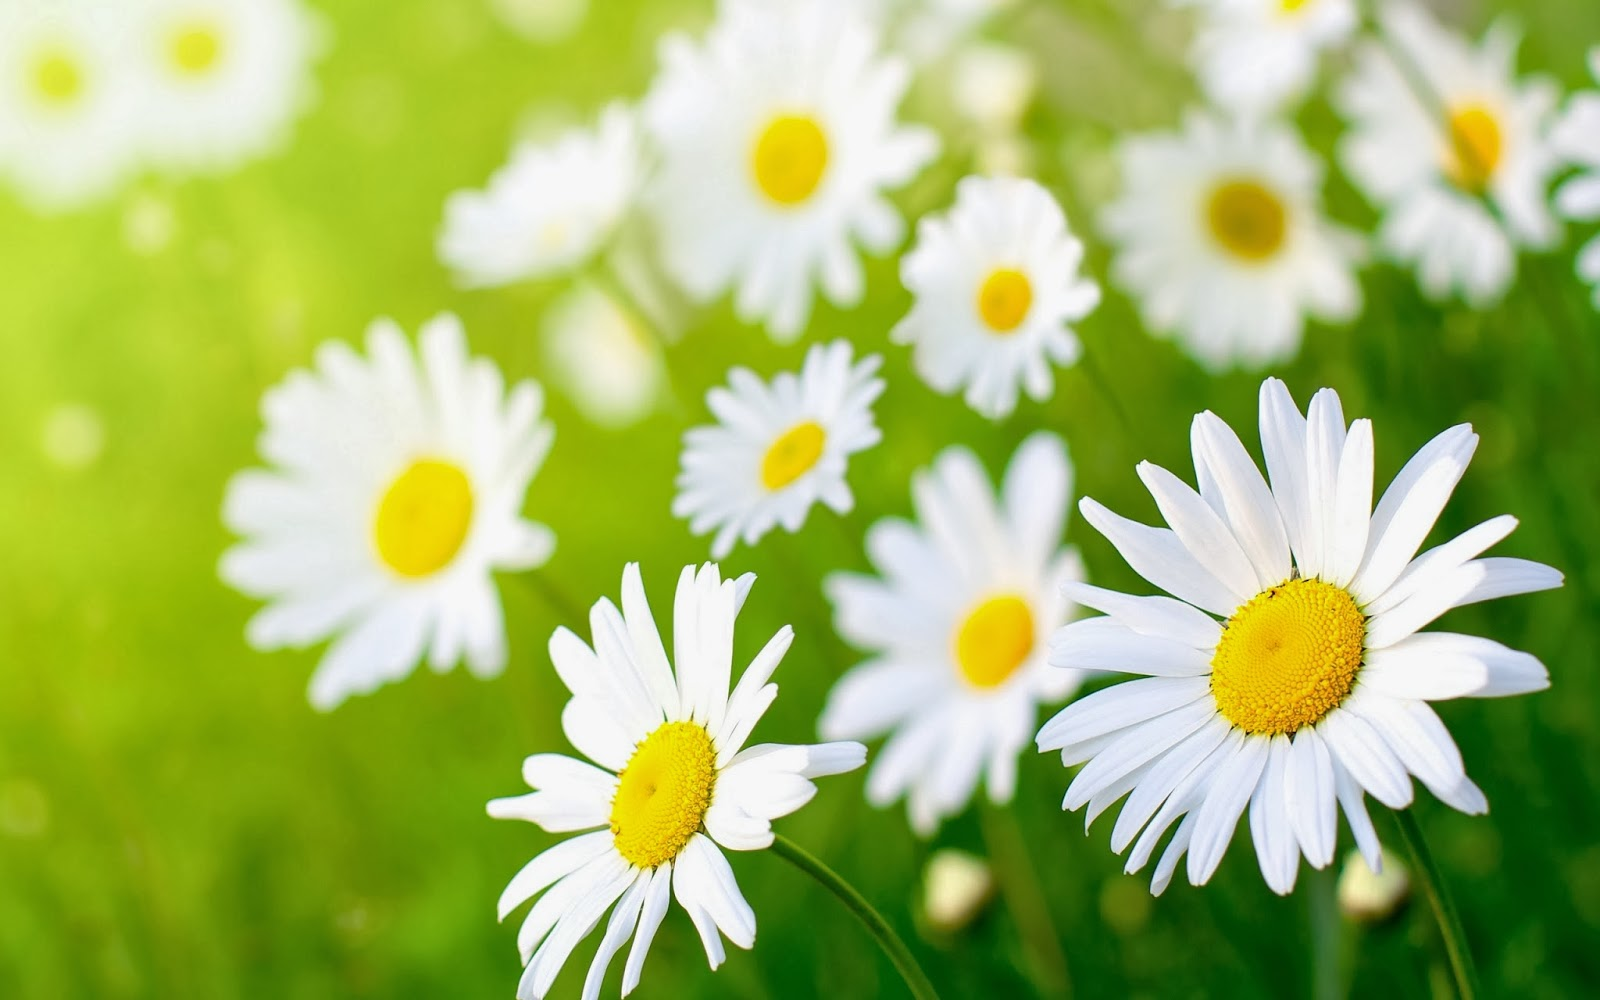 Daisies flower meaning image collections flower wallpaper hd why daisy daisy life posted on april 19 2017 april 20 2017 by denikuul izmirmasajfo image izmirmasajfo Image collections